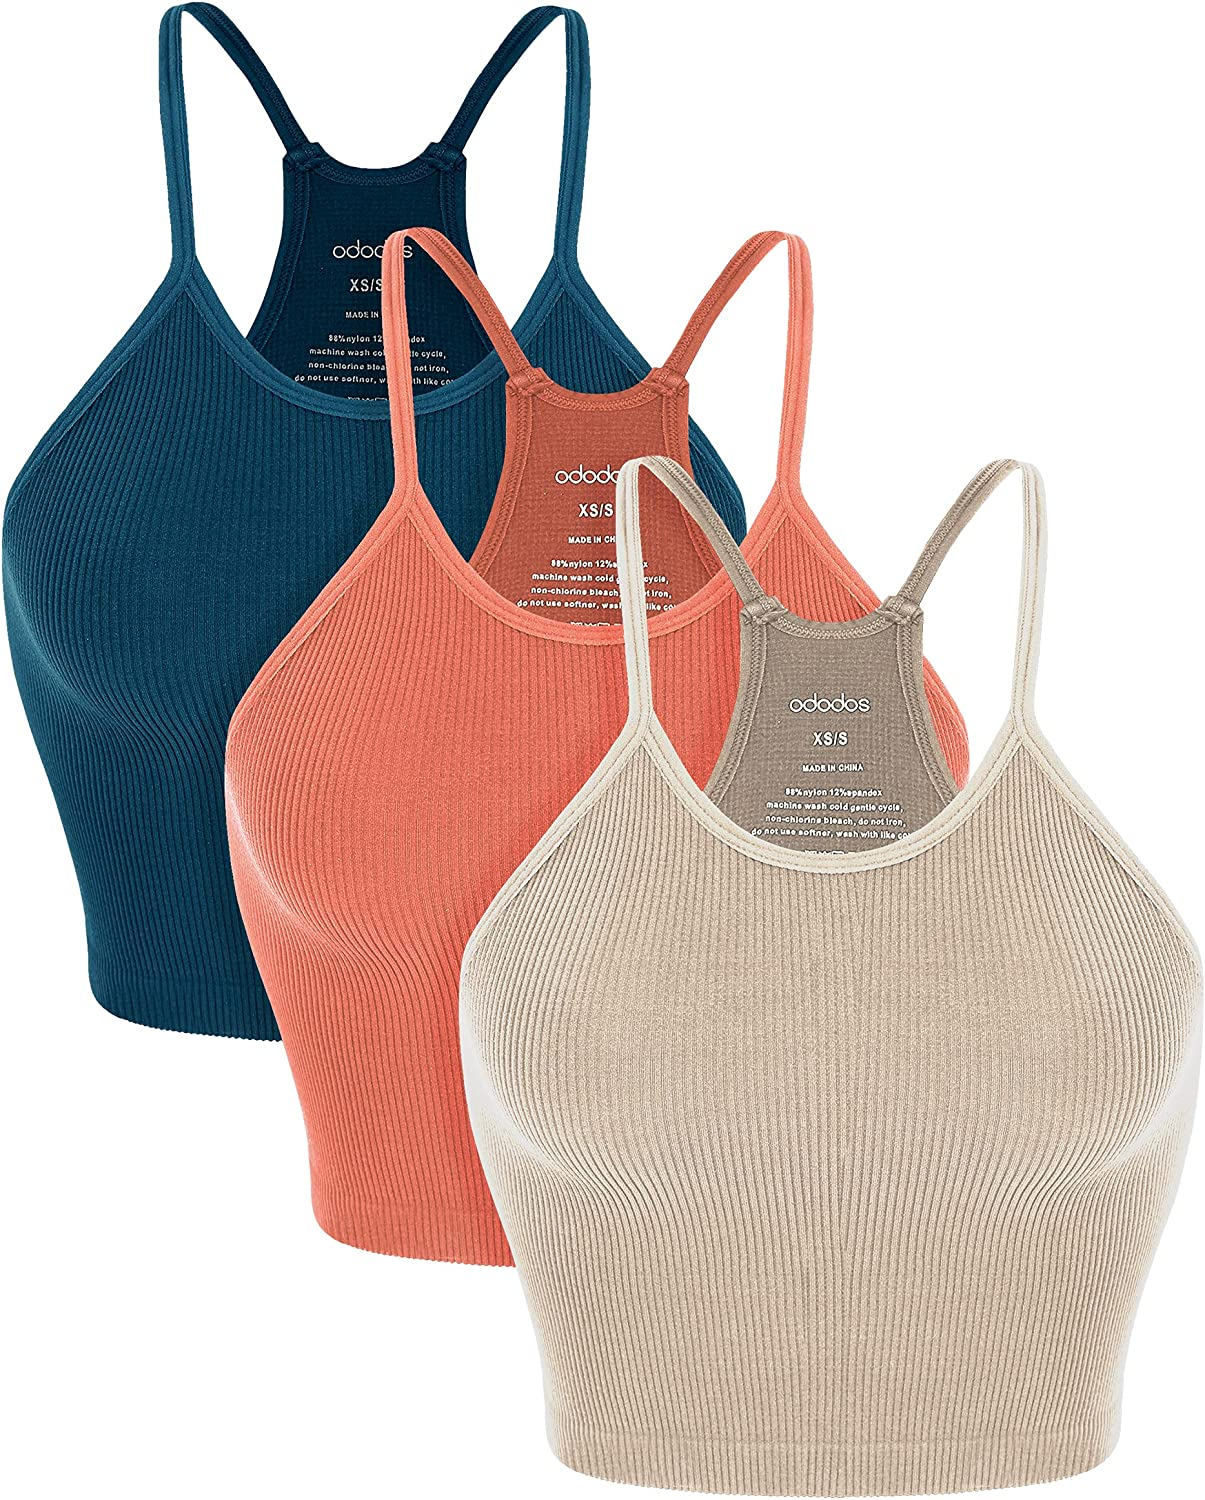 ODODOS Women's Crop 3-Pack Washed Seamless Rib-Knit Camisole Crop Tank Top